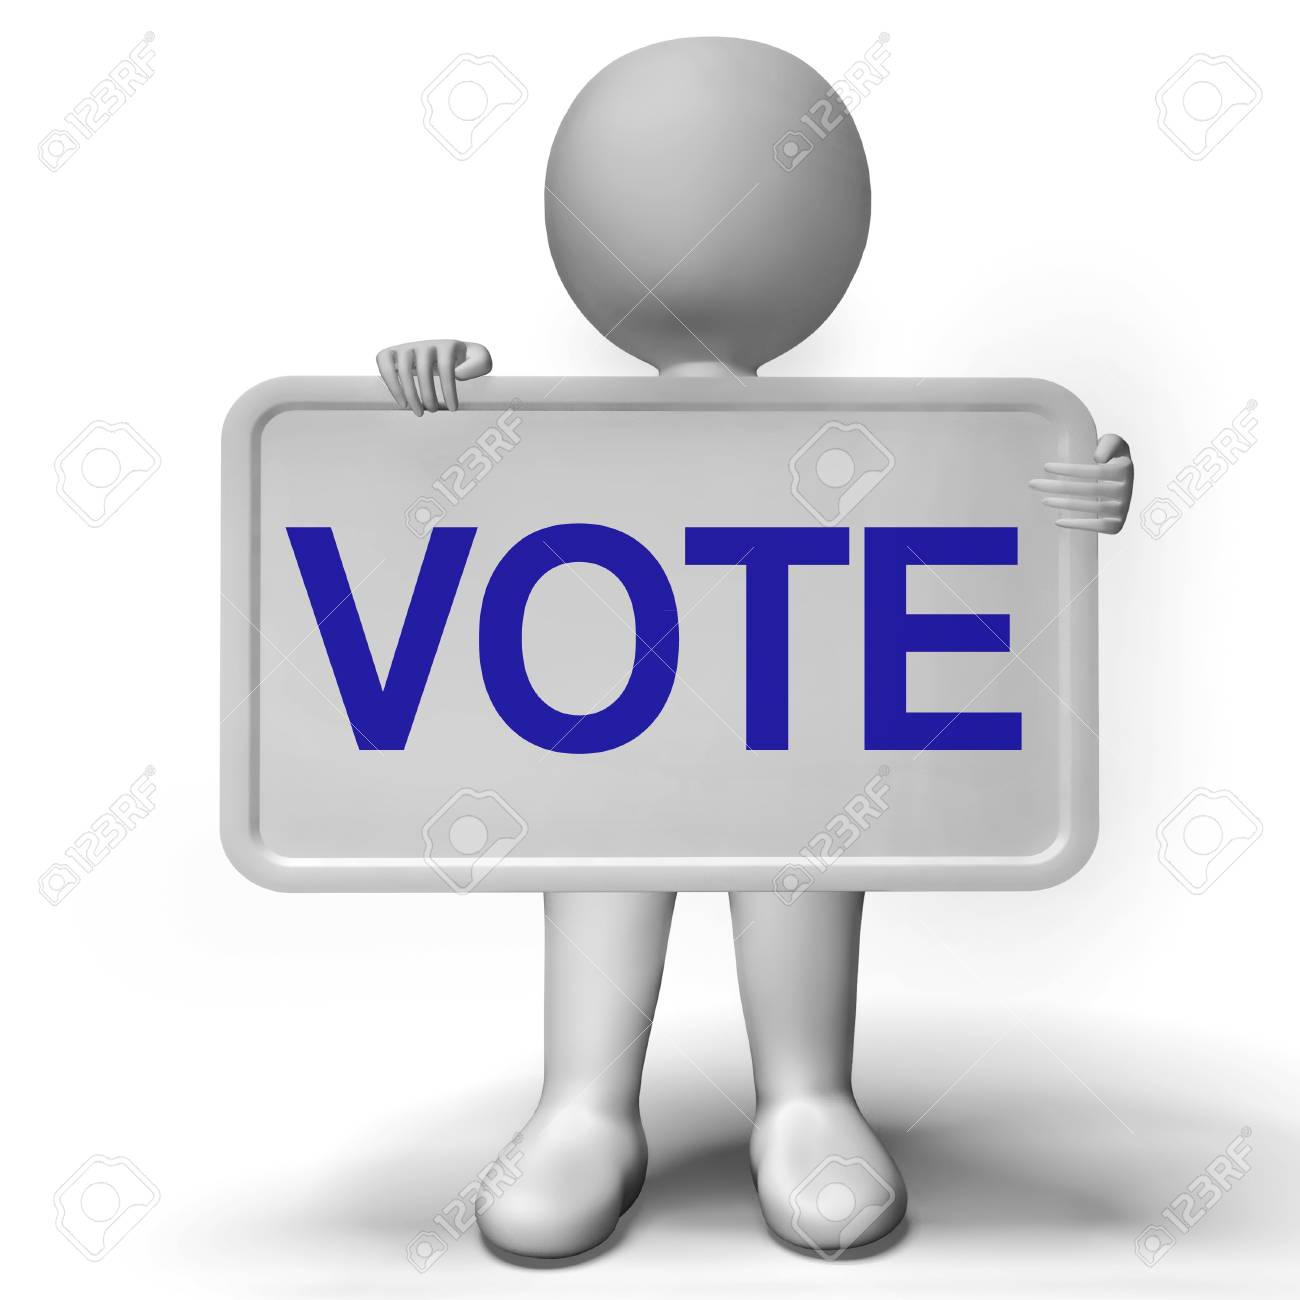 Vote Sign Showing Options Voting Or Choice Stock Photo - 18407106